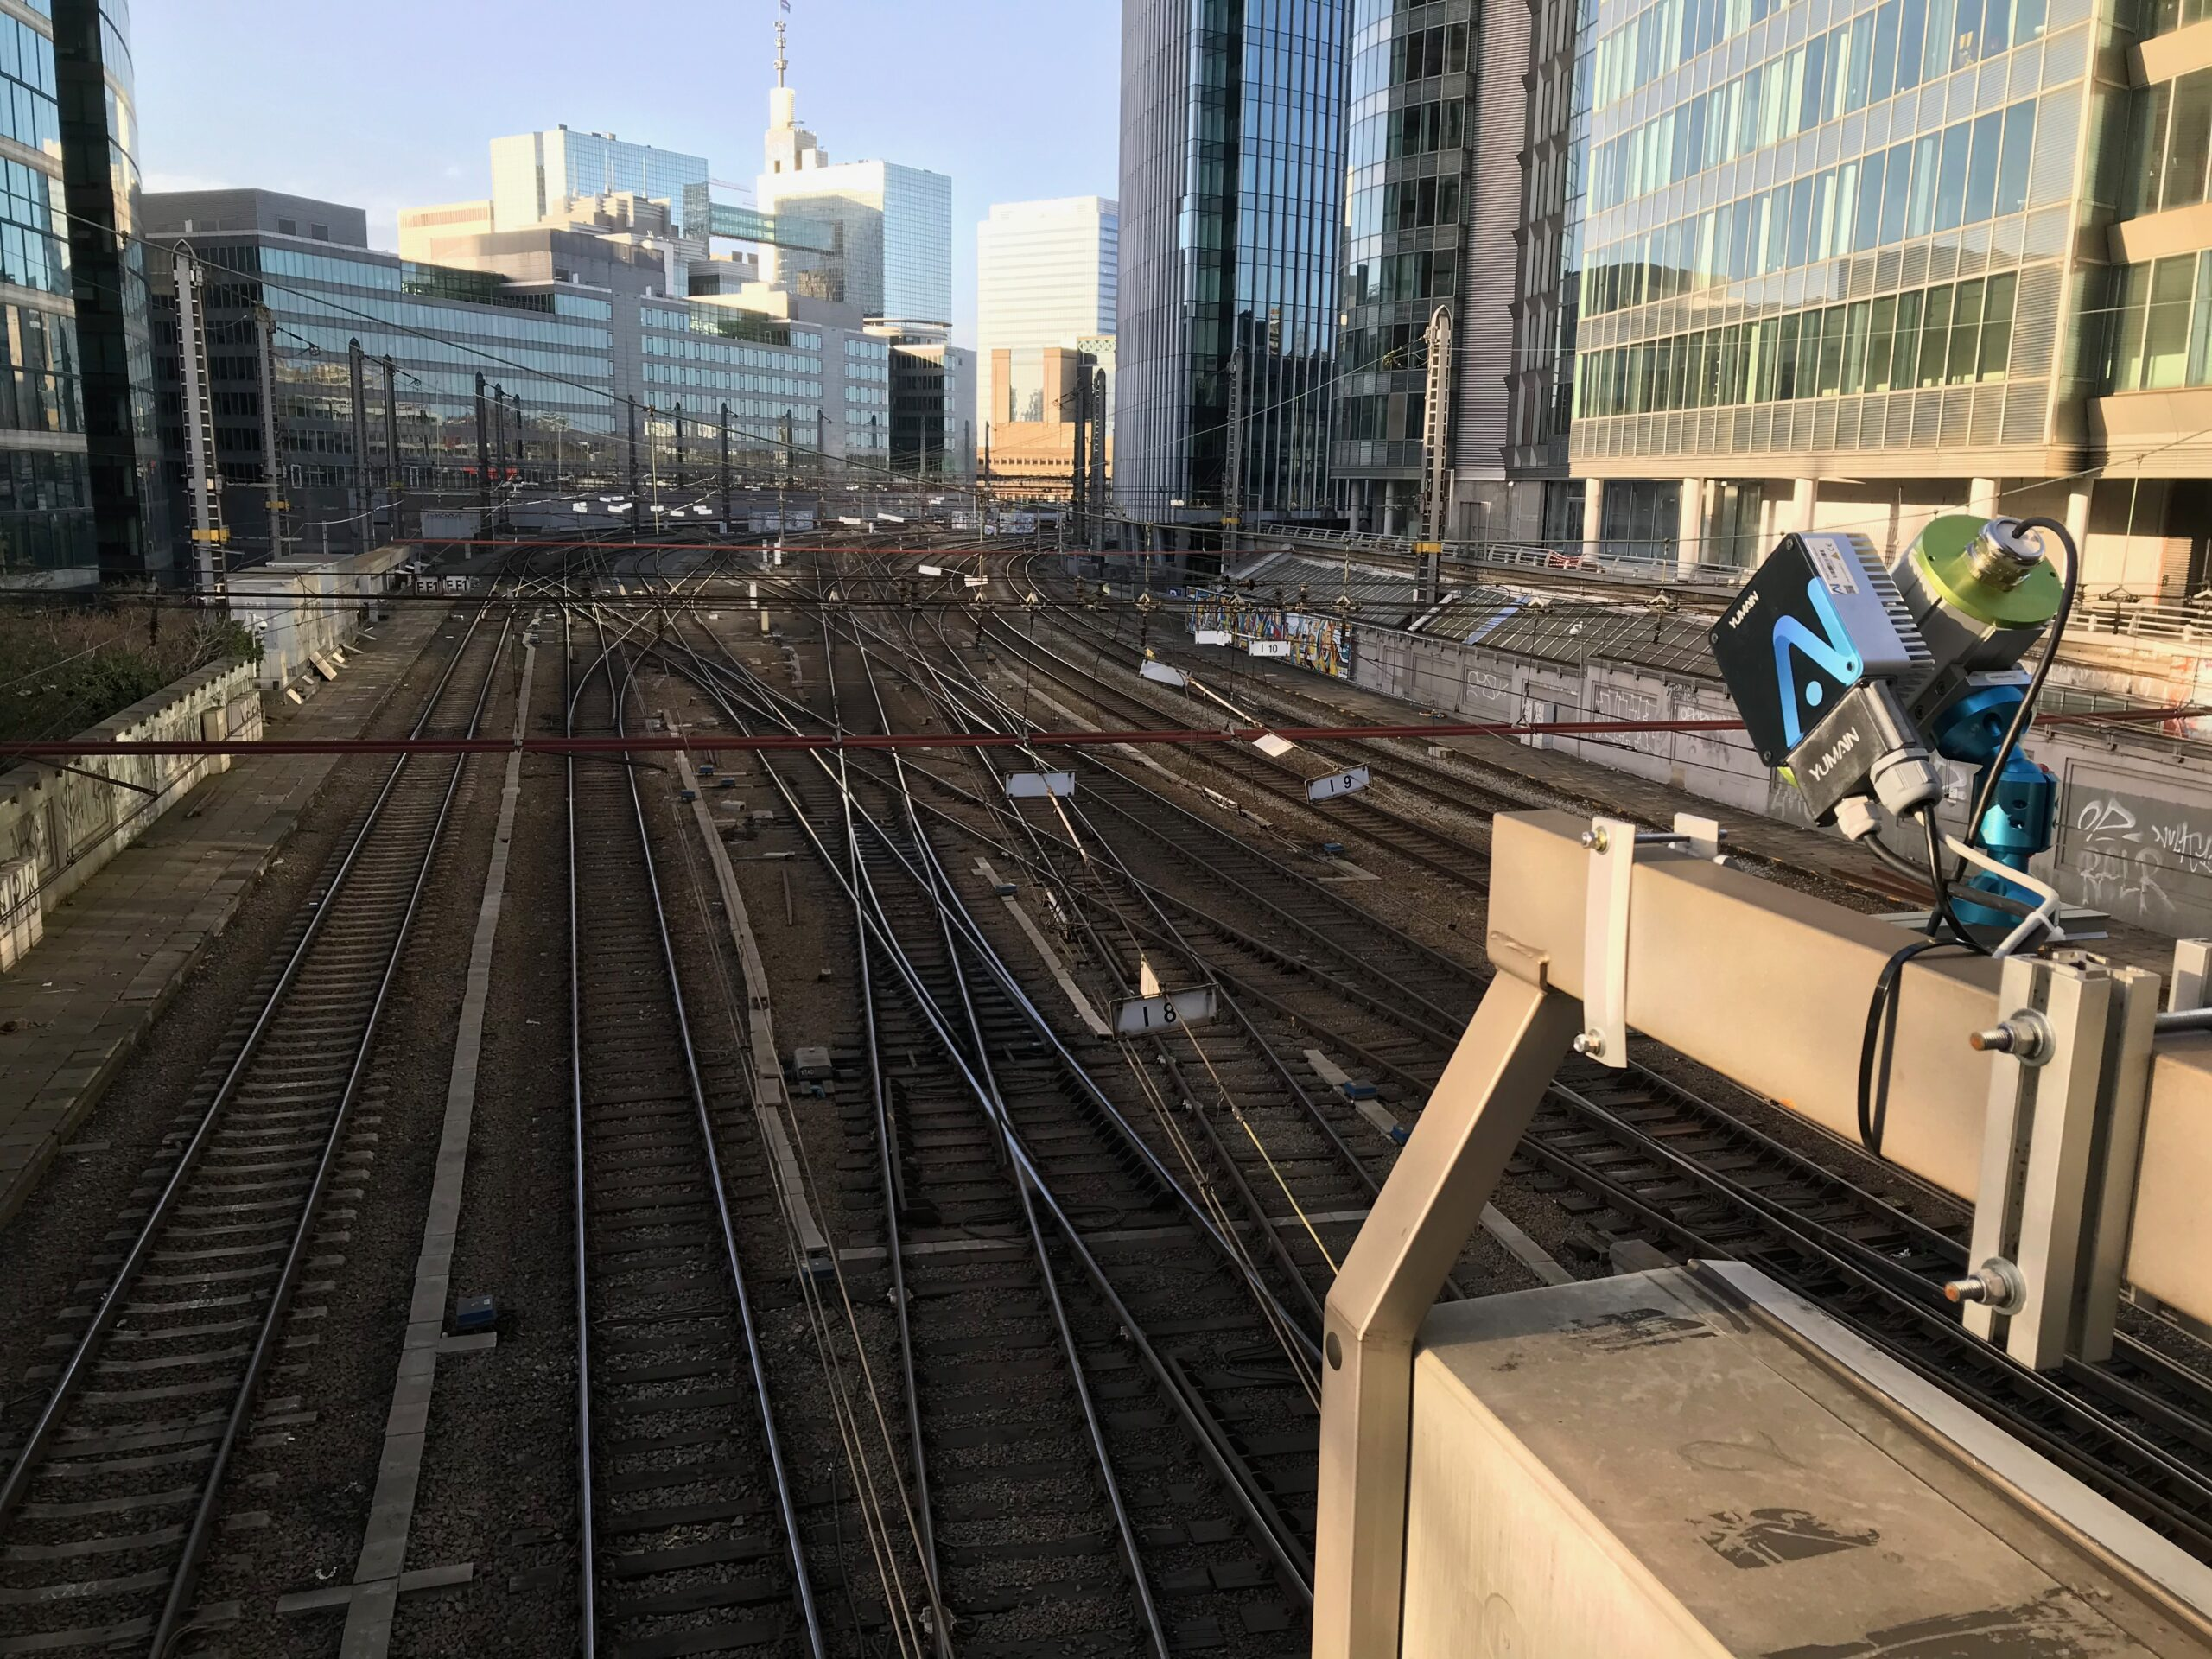 New installation of our E.C.S detection and analysis of defaults on pantographs at Infrabel (Bruxelles) in Belgium.